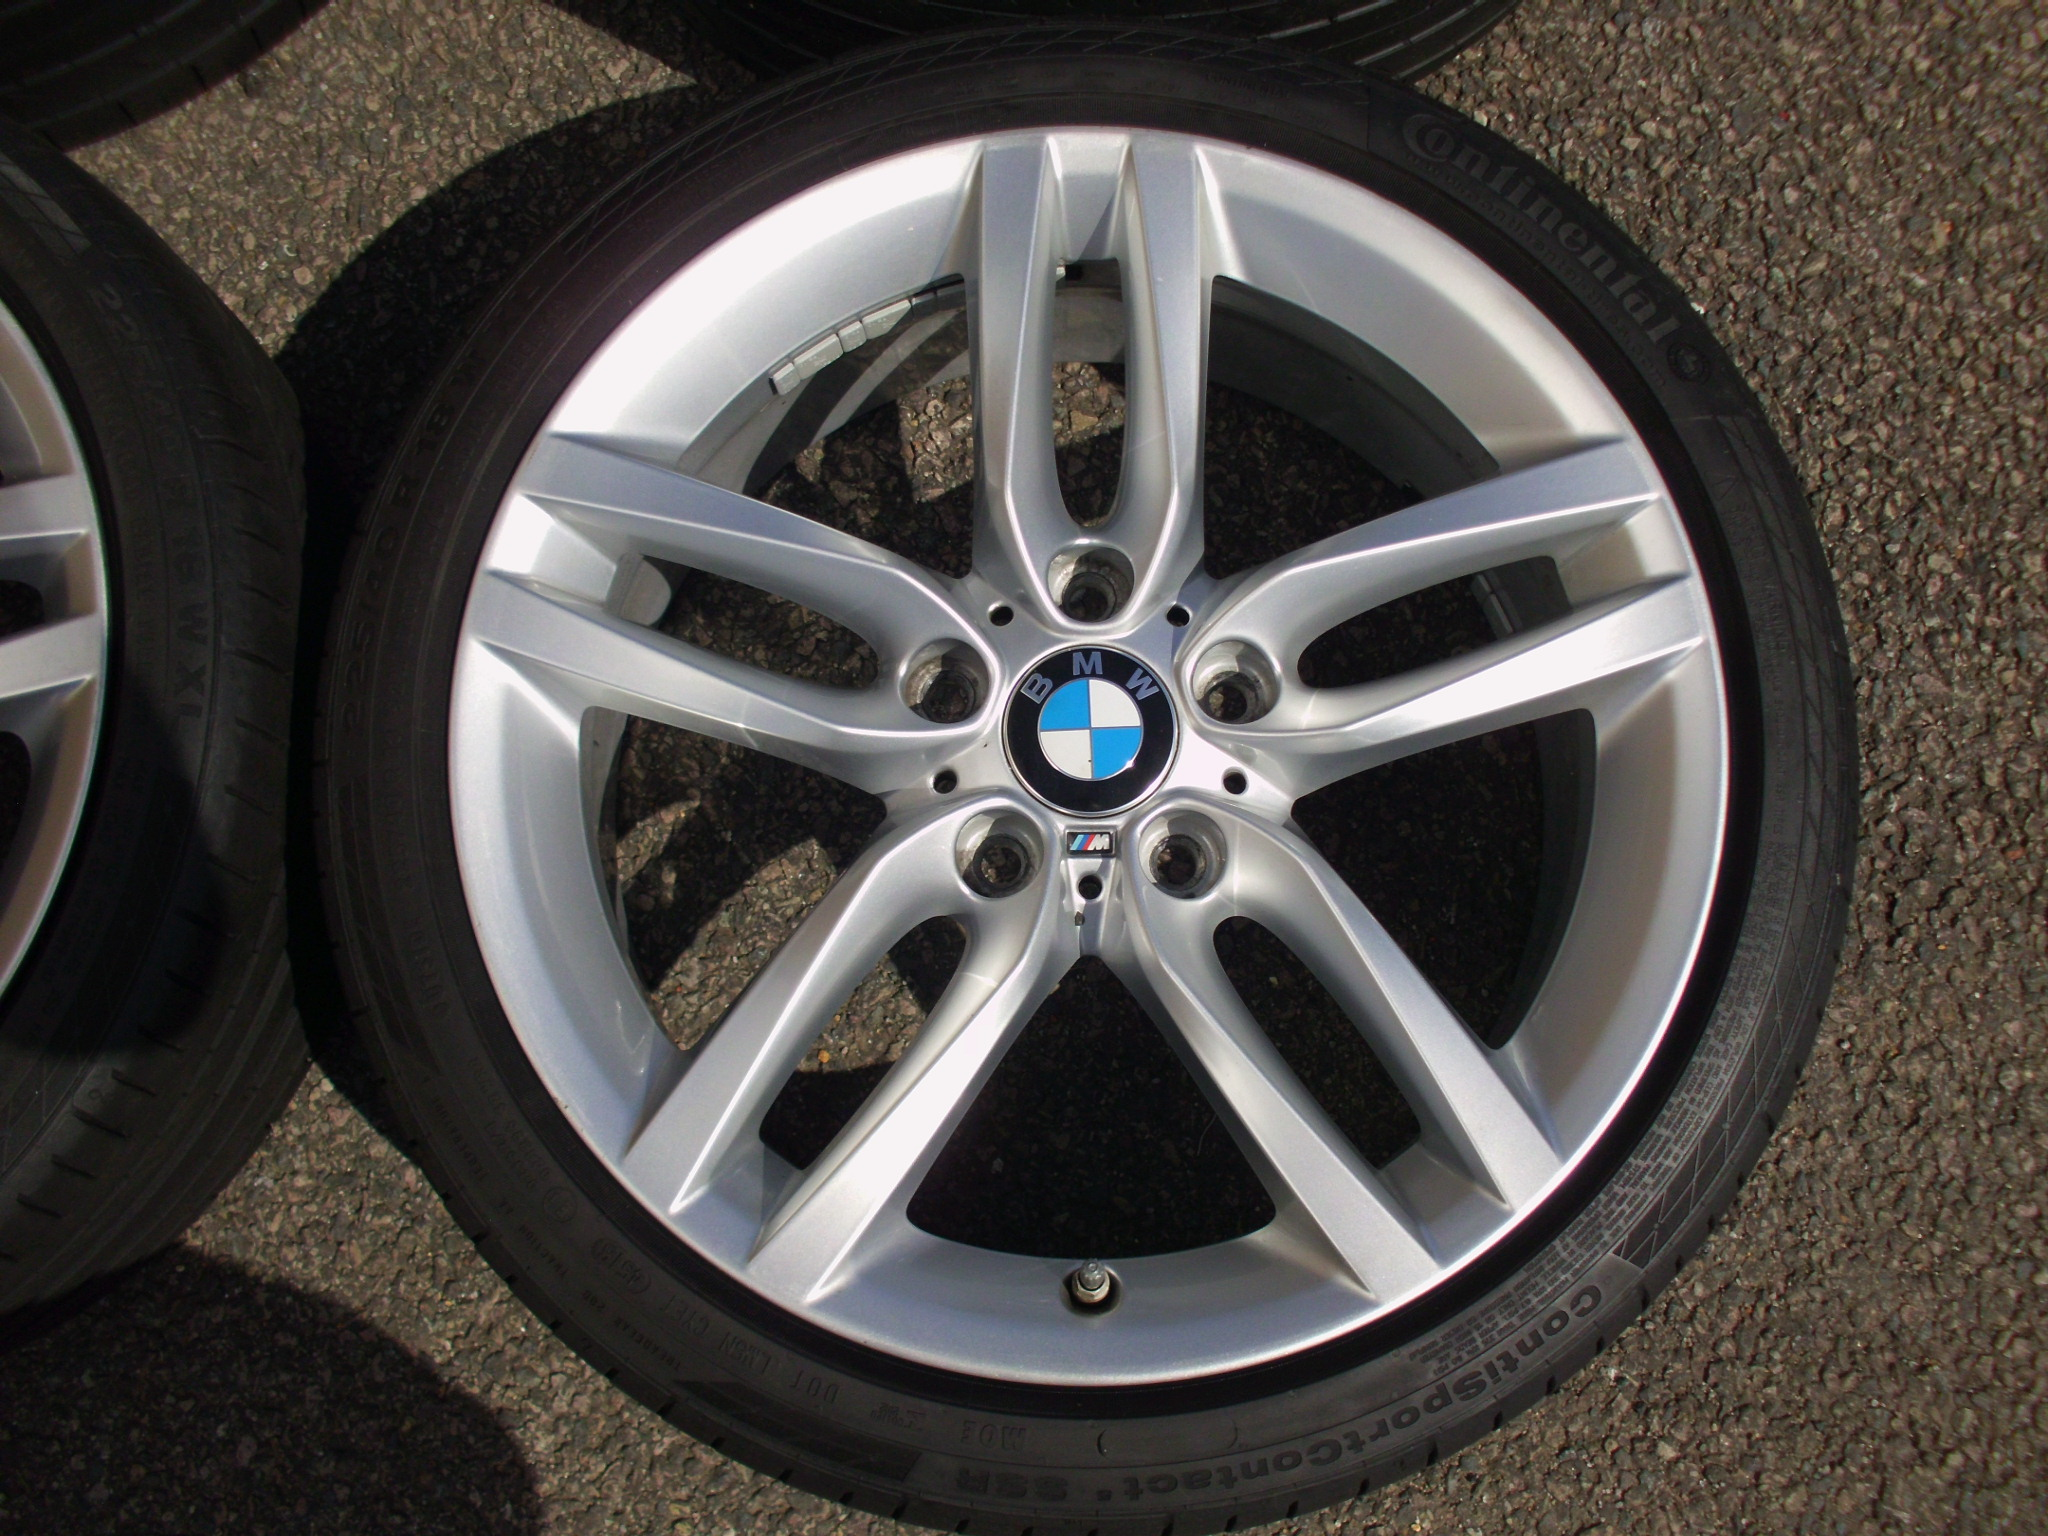 "USED 18"" GENUINE STYLE 461M F20 1 SERIES M SPORT DOUBLE SPOKE ALLOYS, GOOD CONDITION INC CONTINENTAL RUNFLAT TYRES"